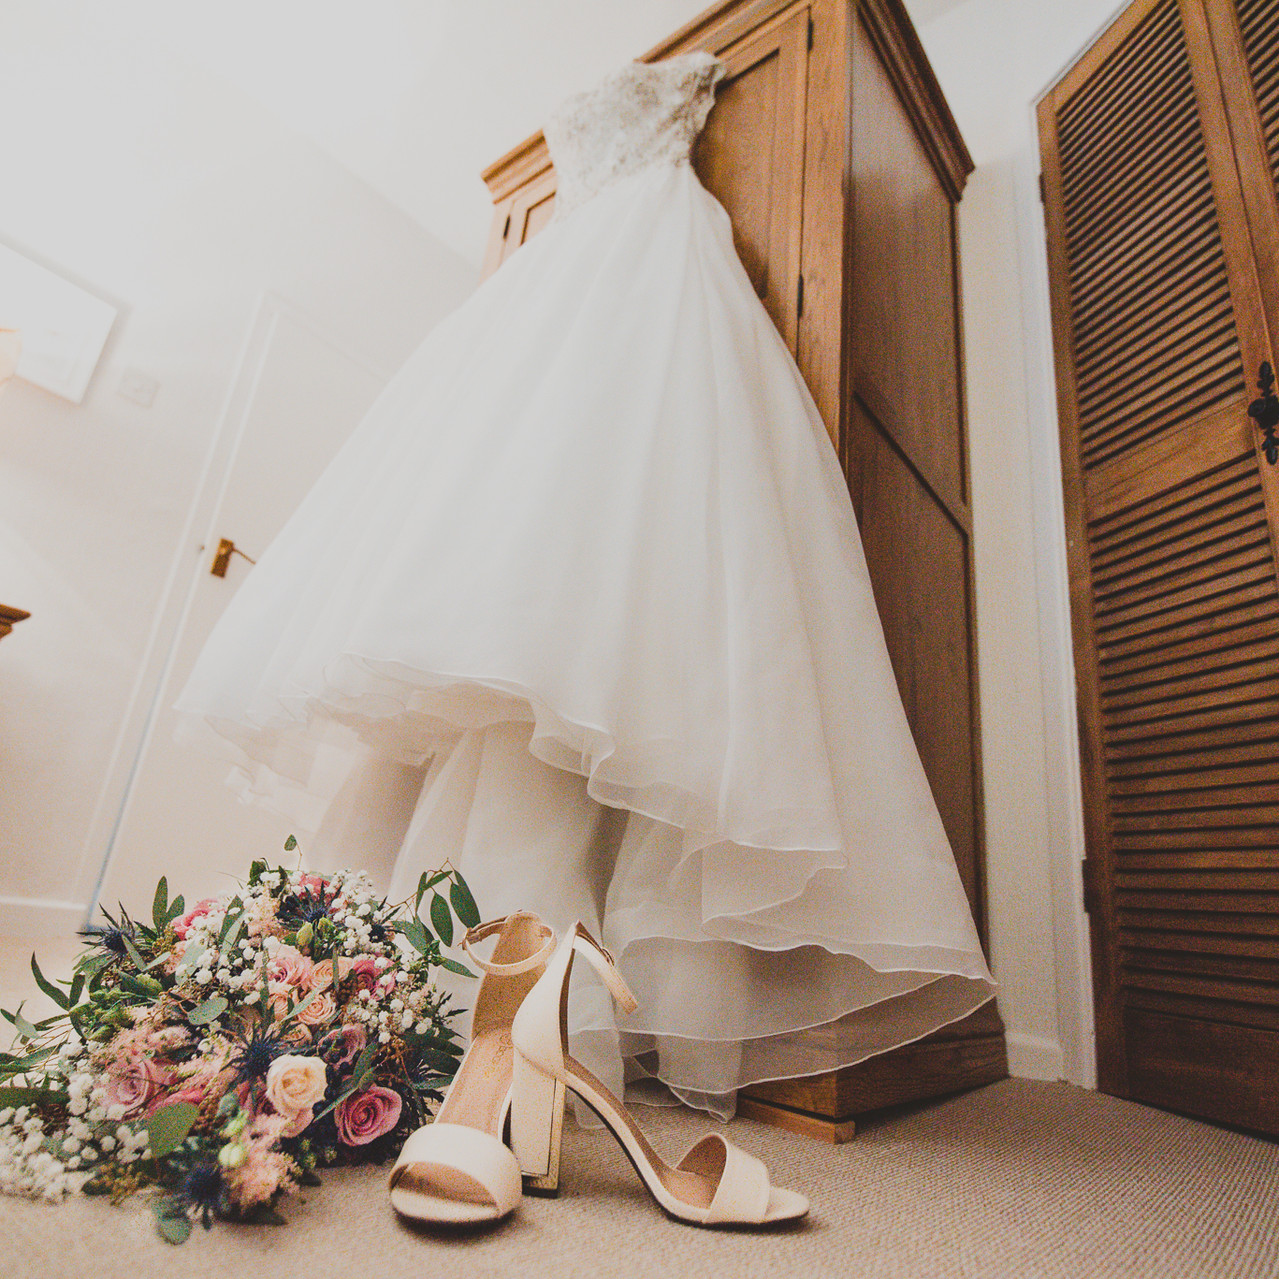 Fay Wedding - Thursford Collection at the Garden Pavilion, Norfolk. Wedding Dress and Flowers with shoes